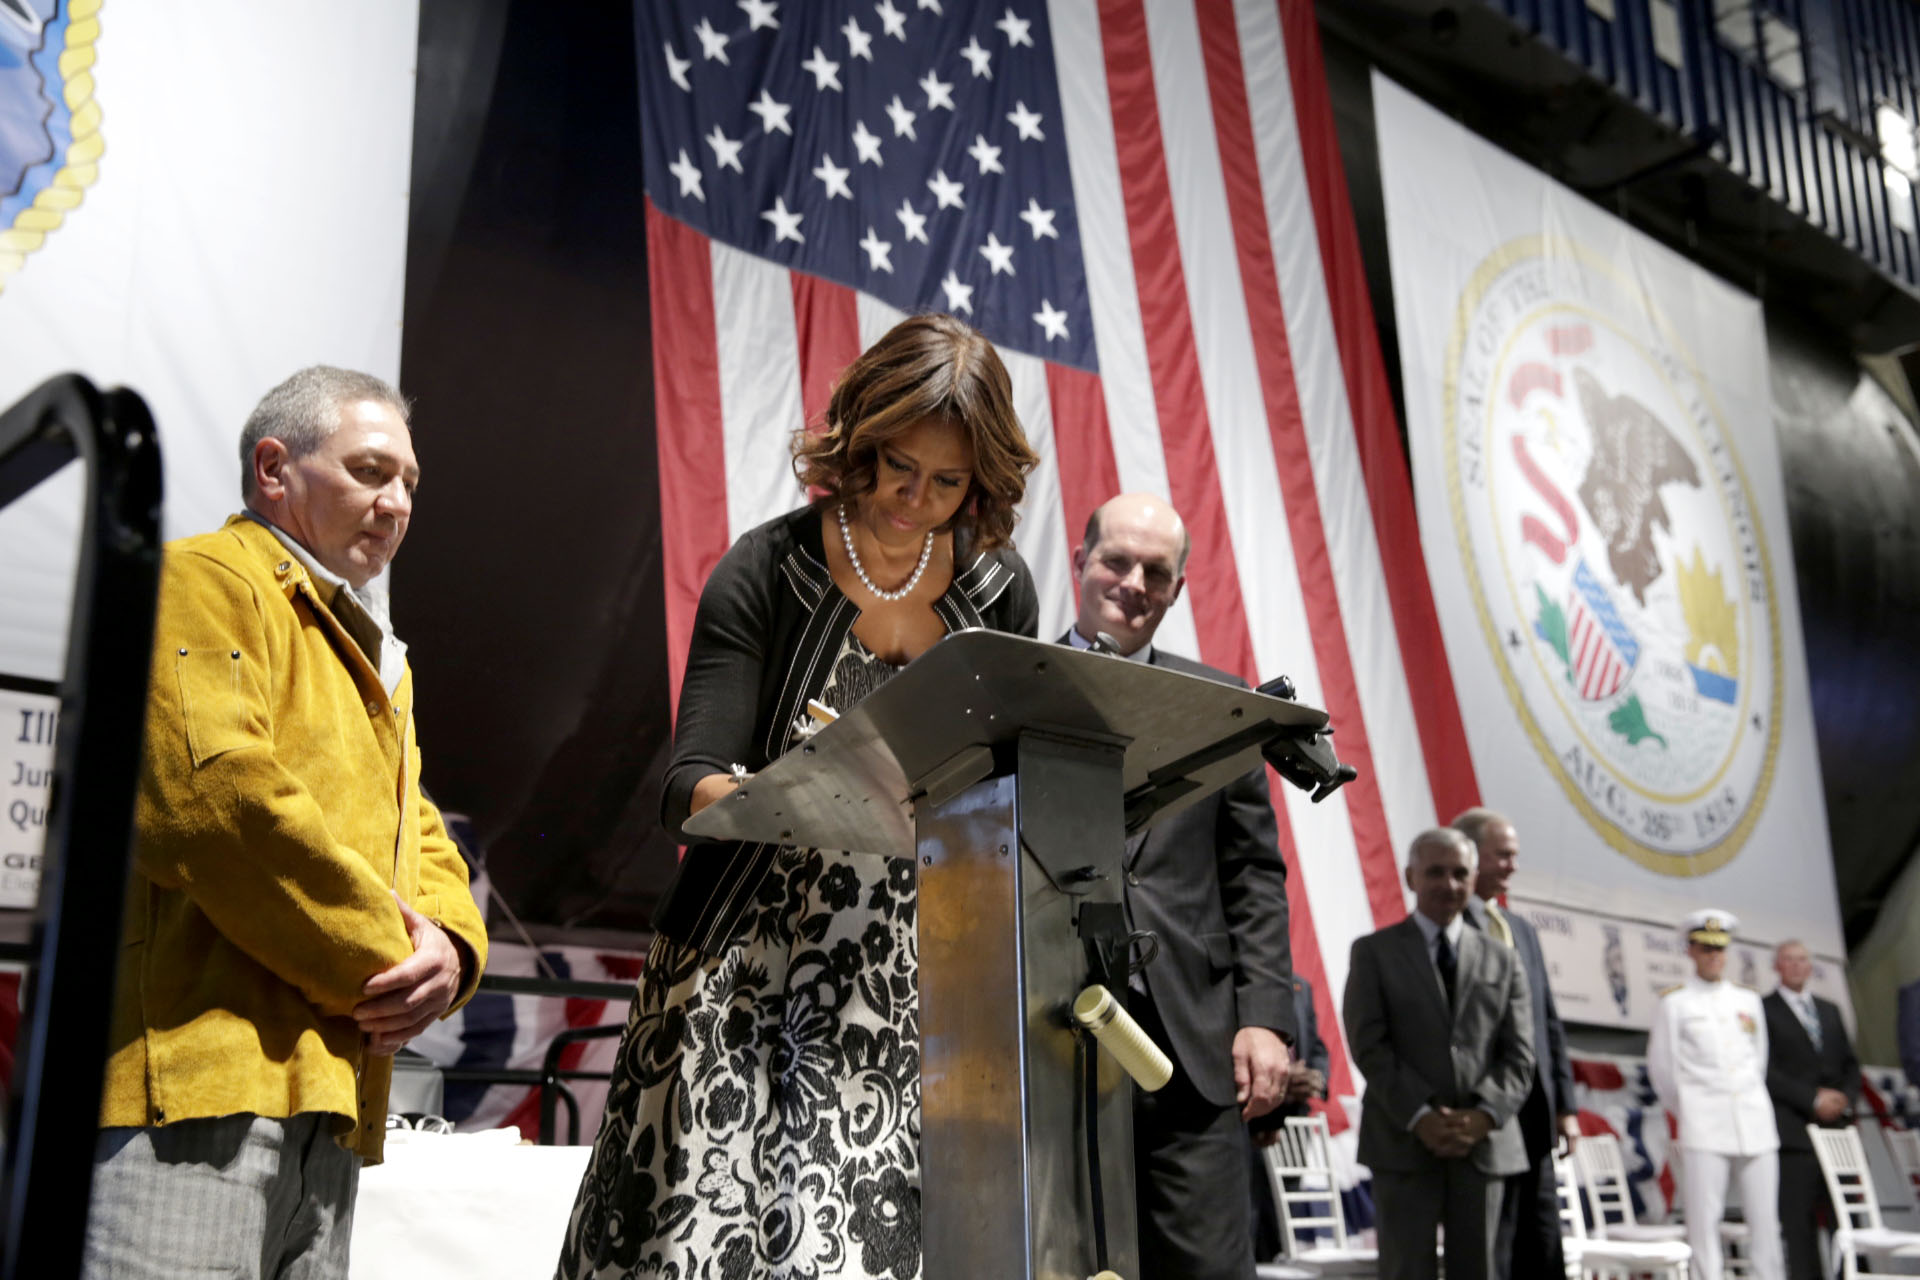 First Lady Michelle Obama Participates In Ceremony For New US Navy Submarine – ILLINOIS